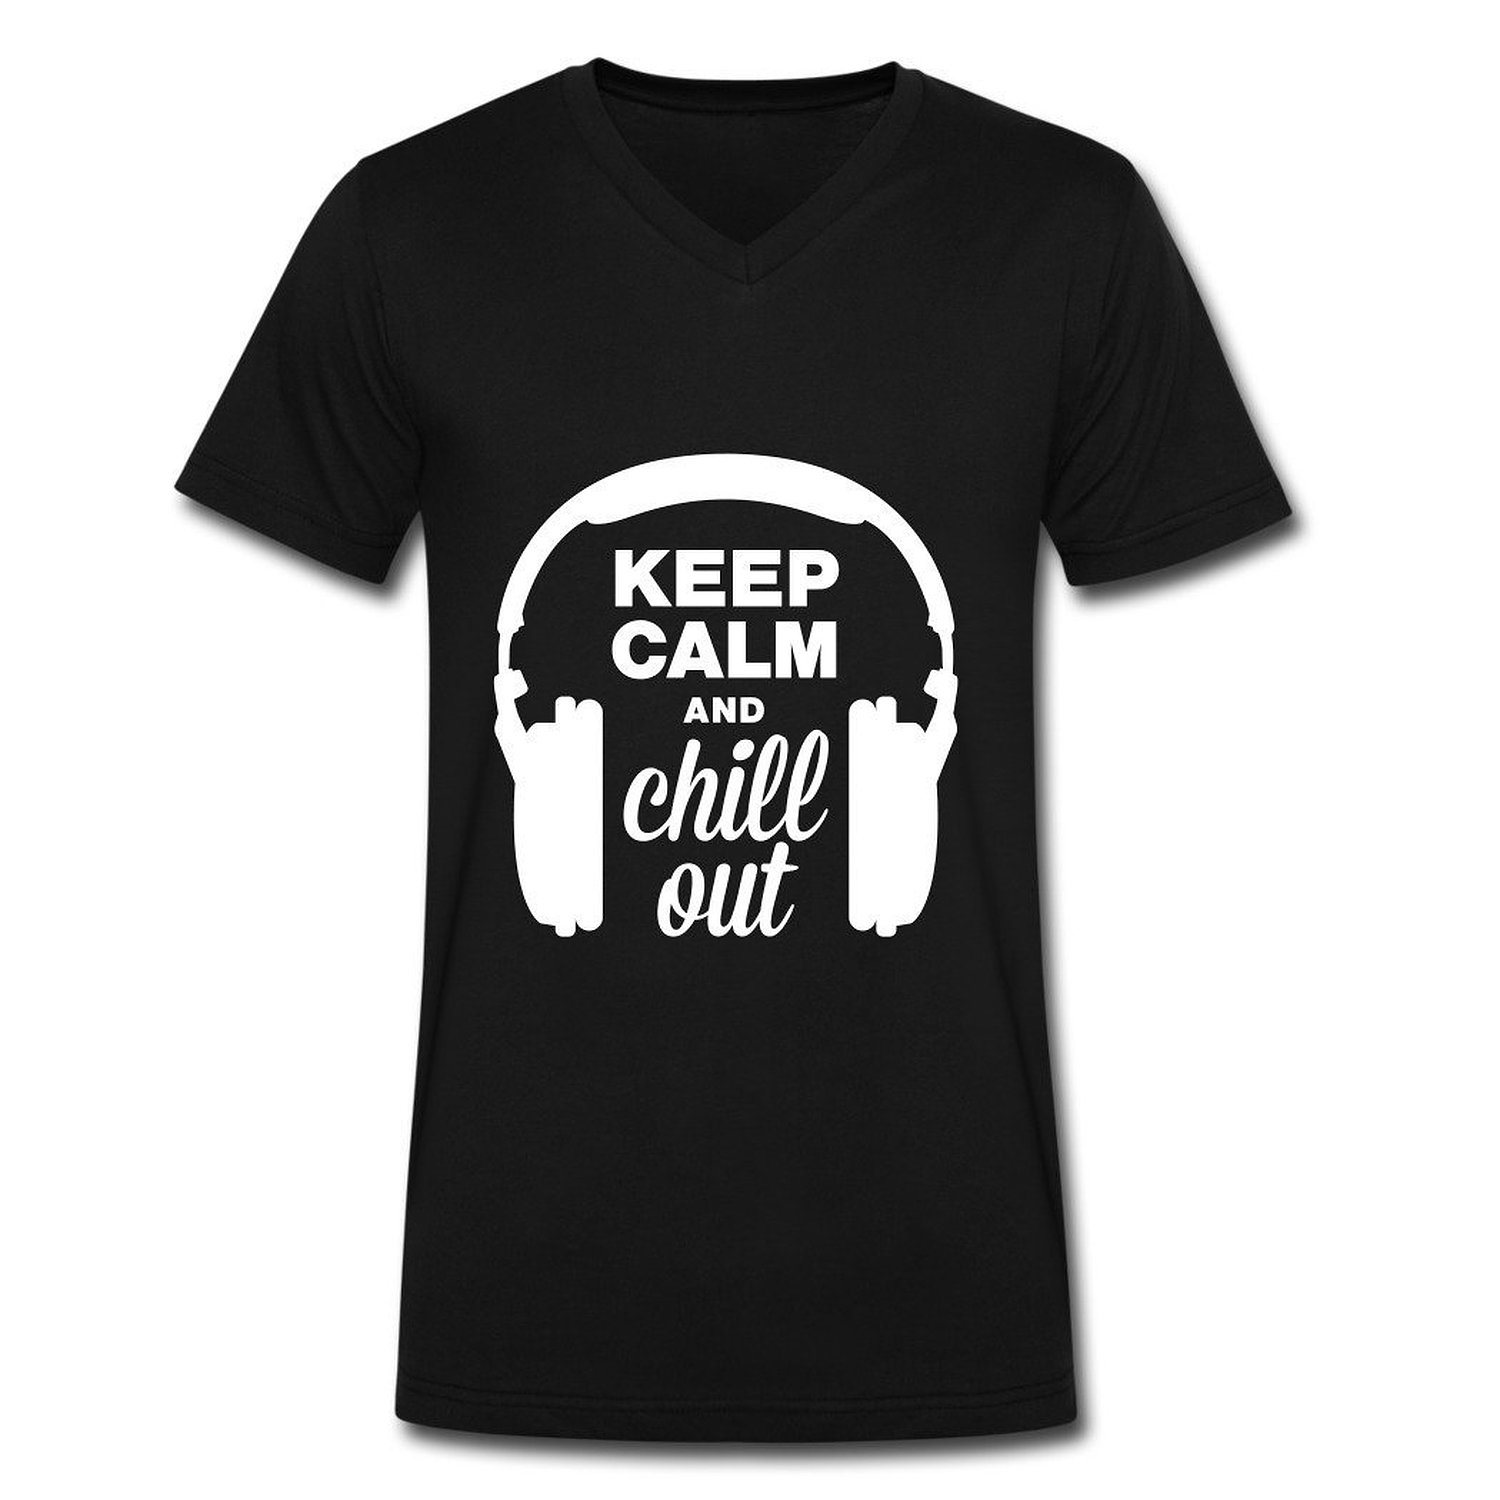 A N Y Men's Headphones Keep Calm And Chill Out T-Shirts Black